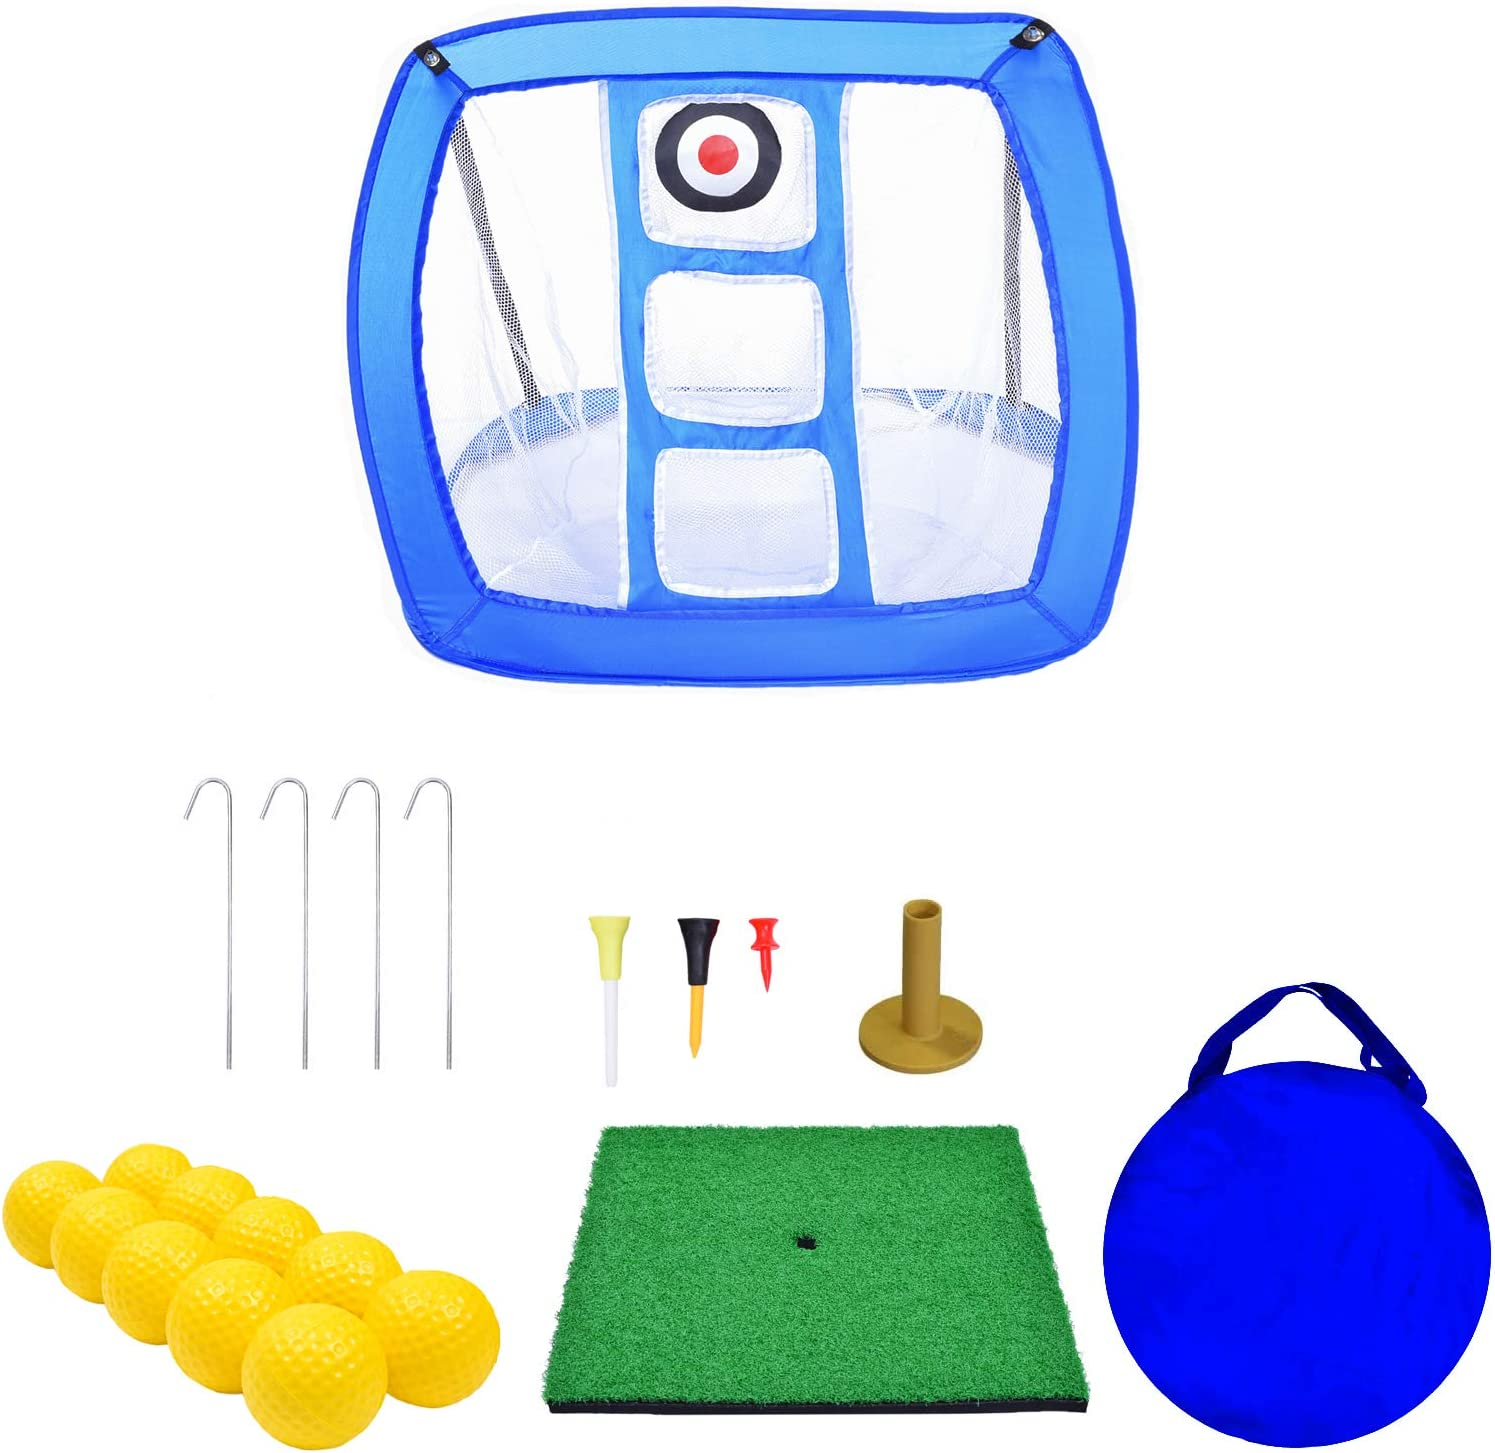 Veggicy Sales Golf Chipping Minneapolis Mall Net G Outdoor Collapsible Indoor